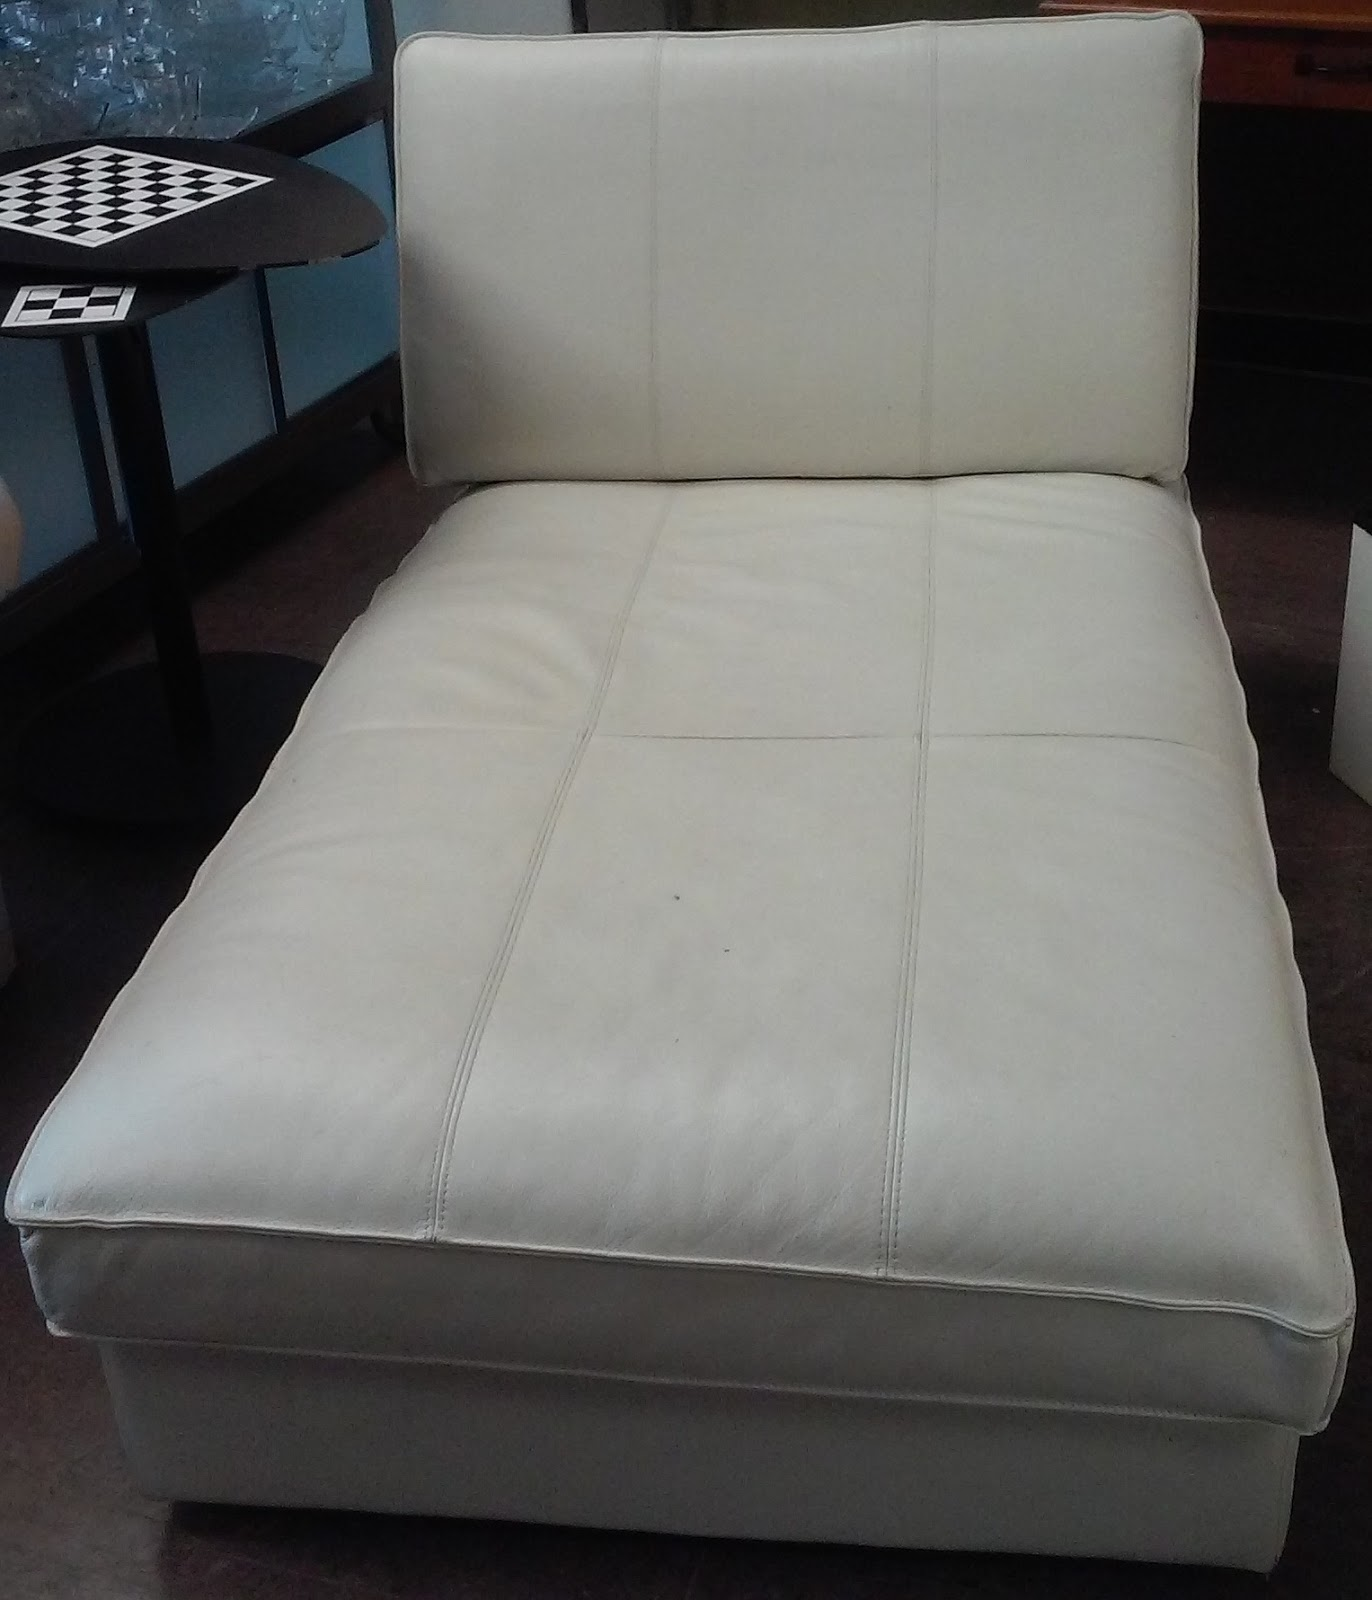 UHURU FURNITURE & COLLECTIBLES SOLD Modern White Leather Chaise $110